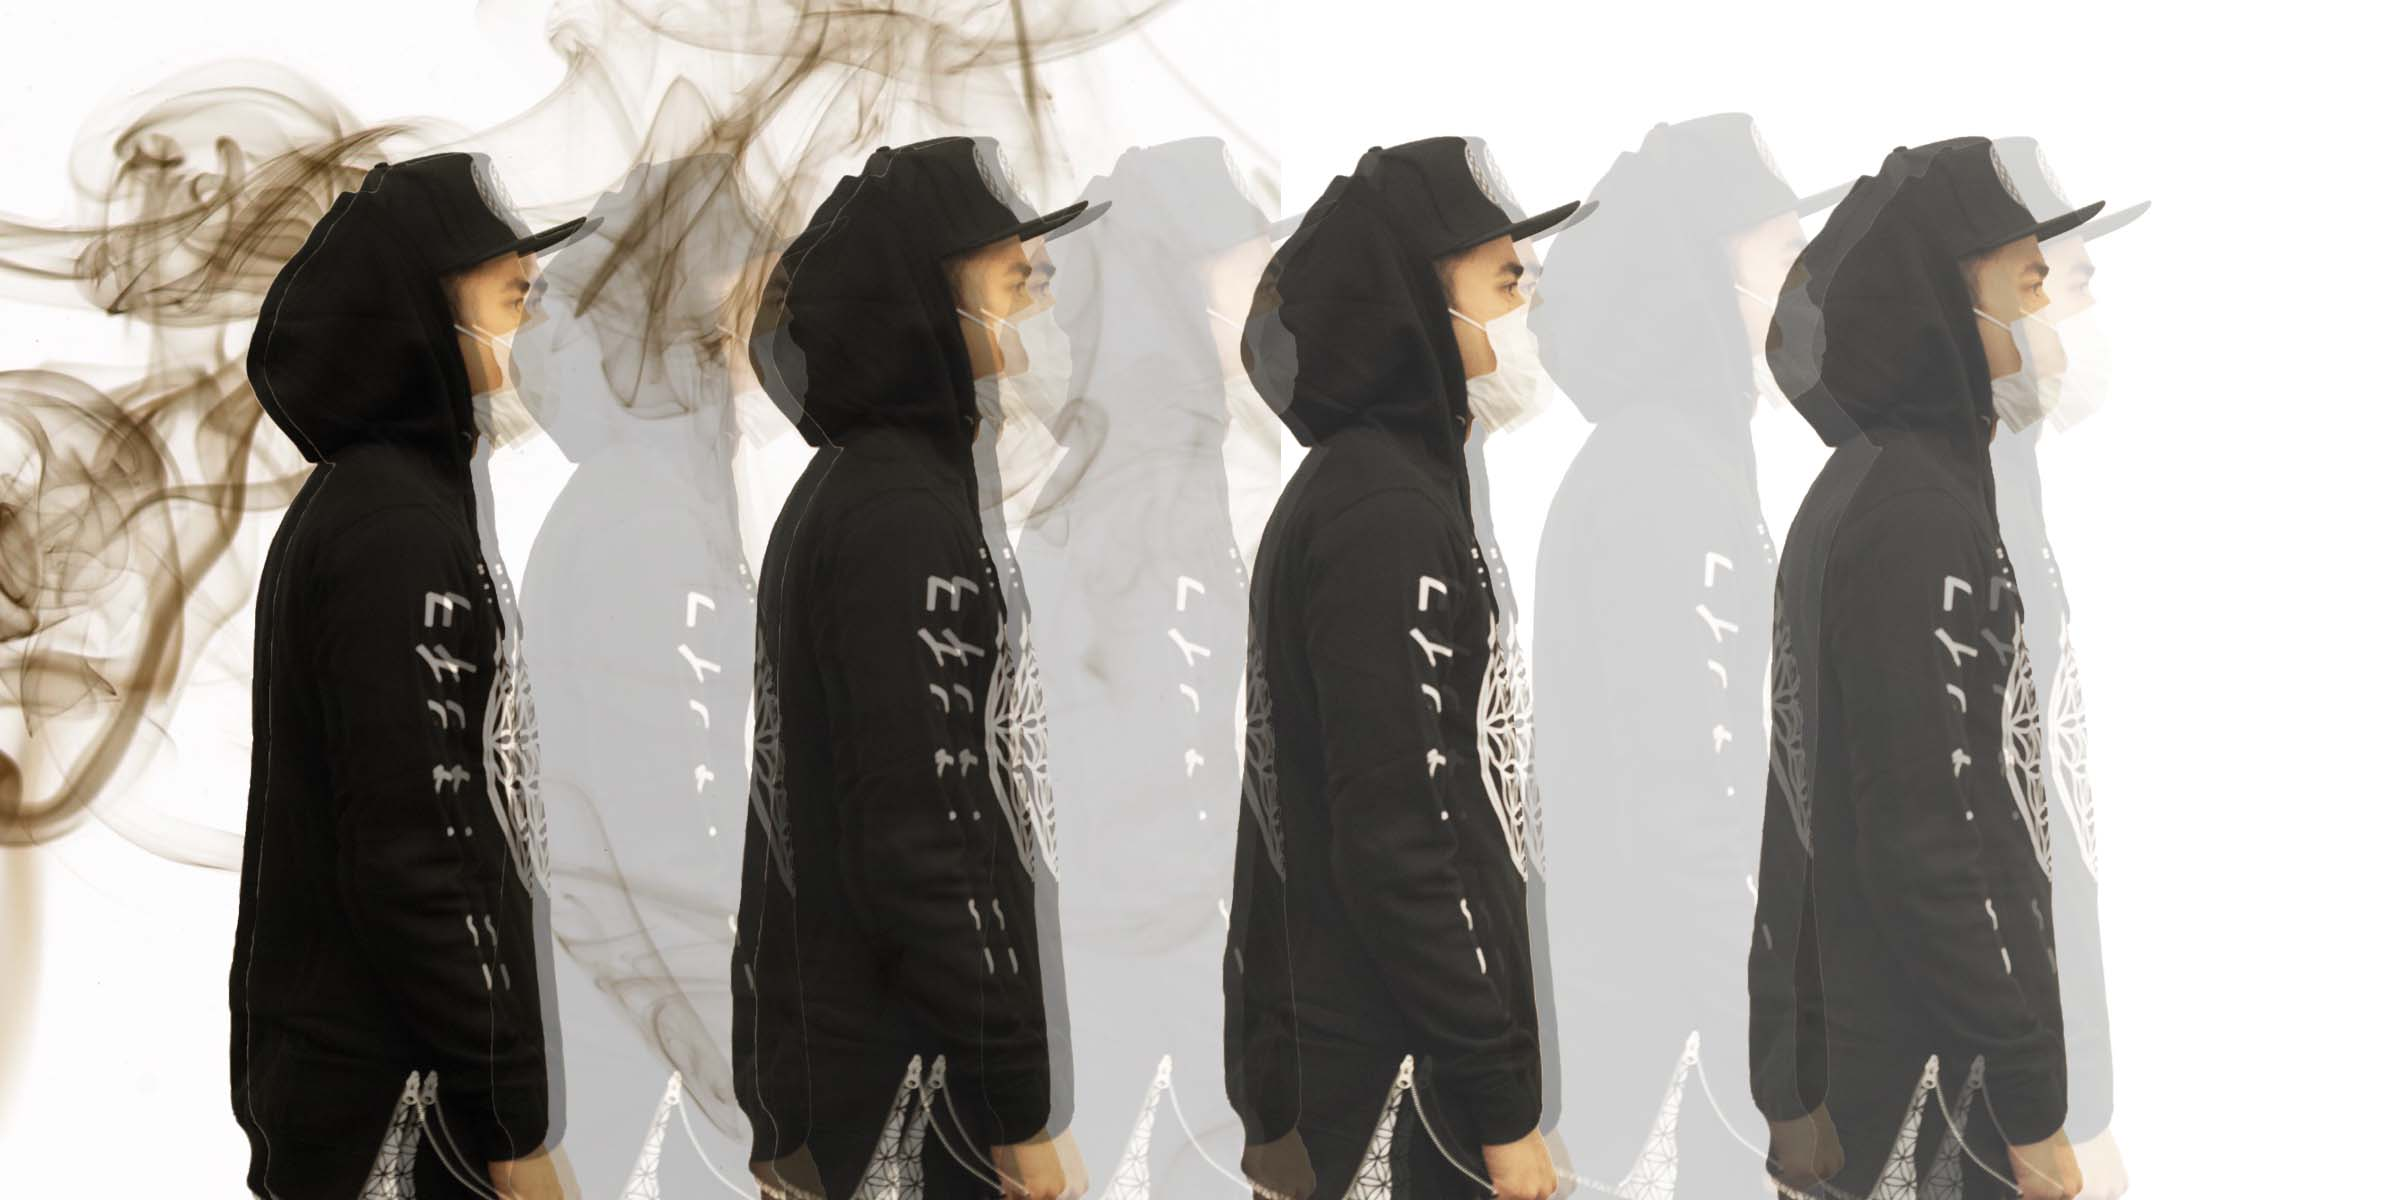 Hoodie Side Wallpaper.jpg